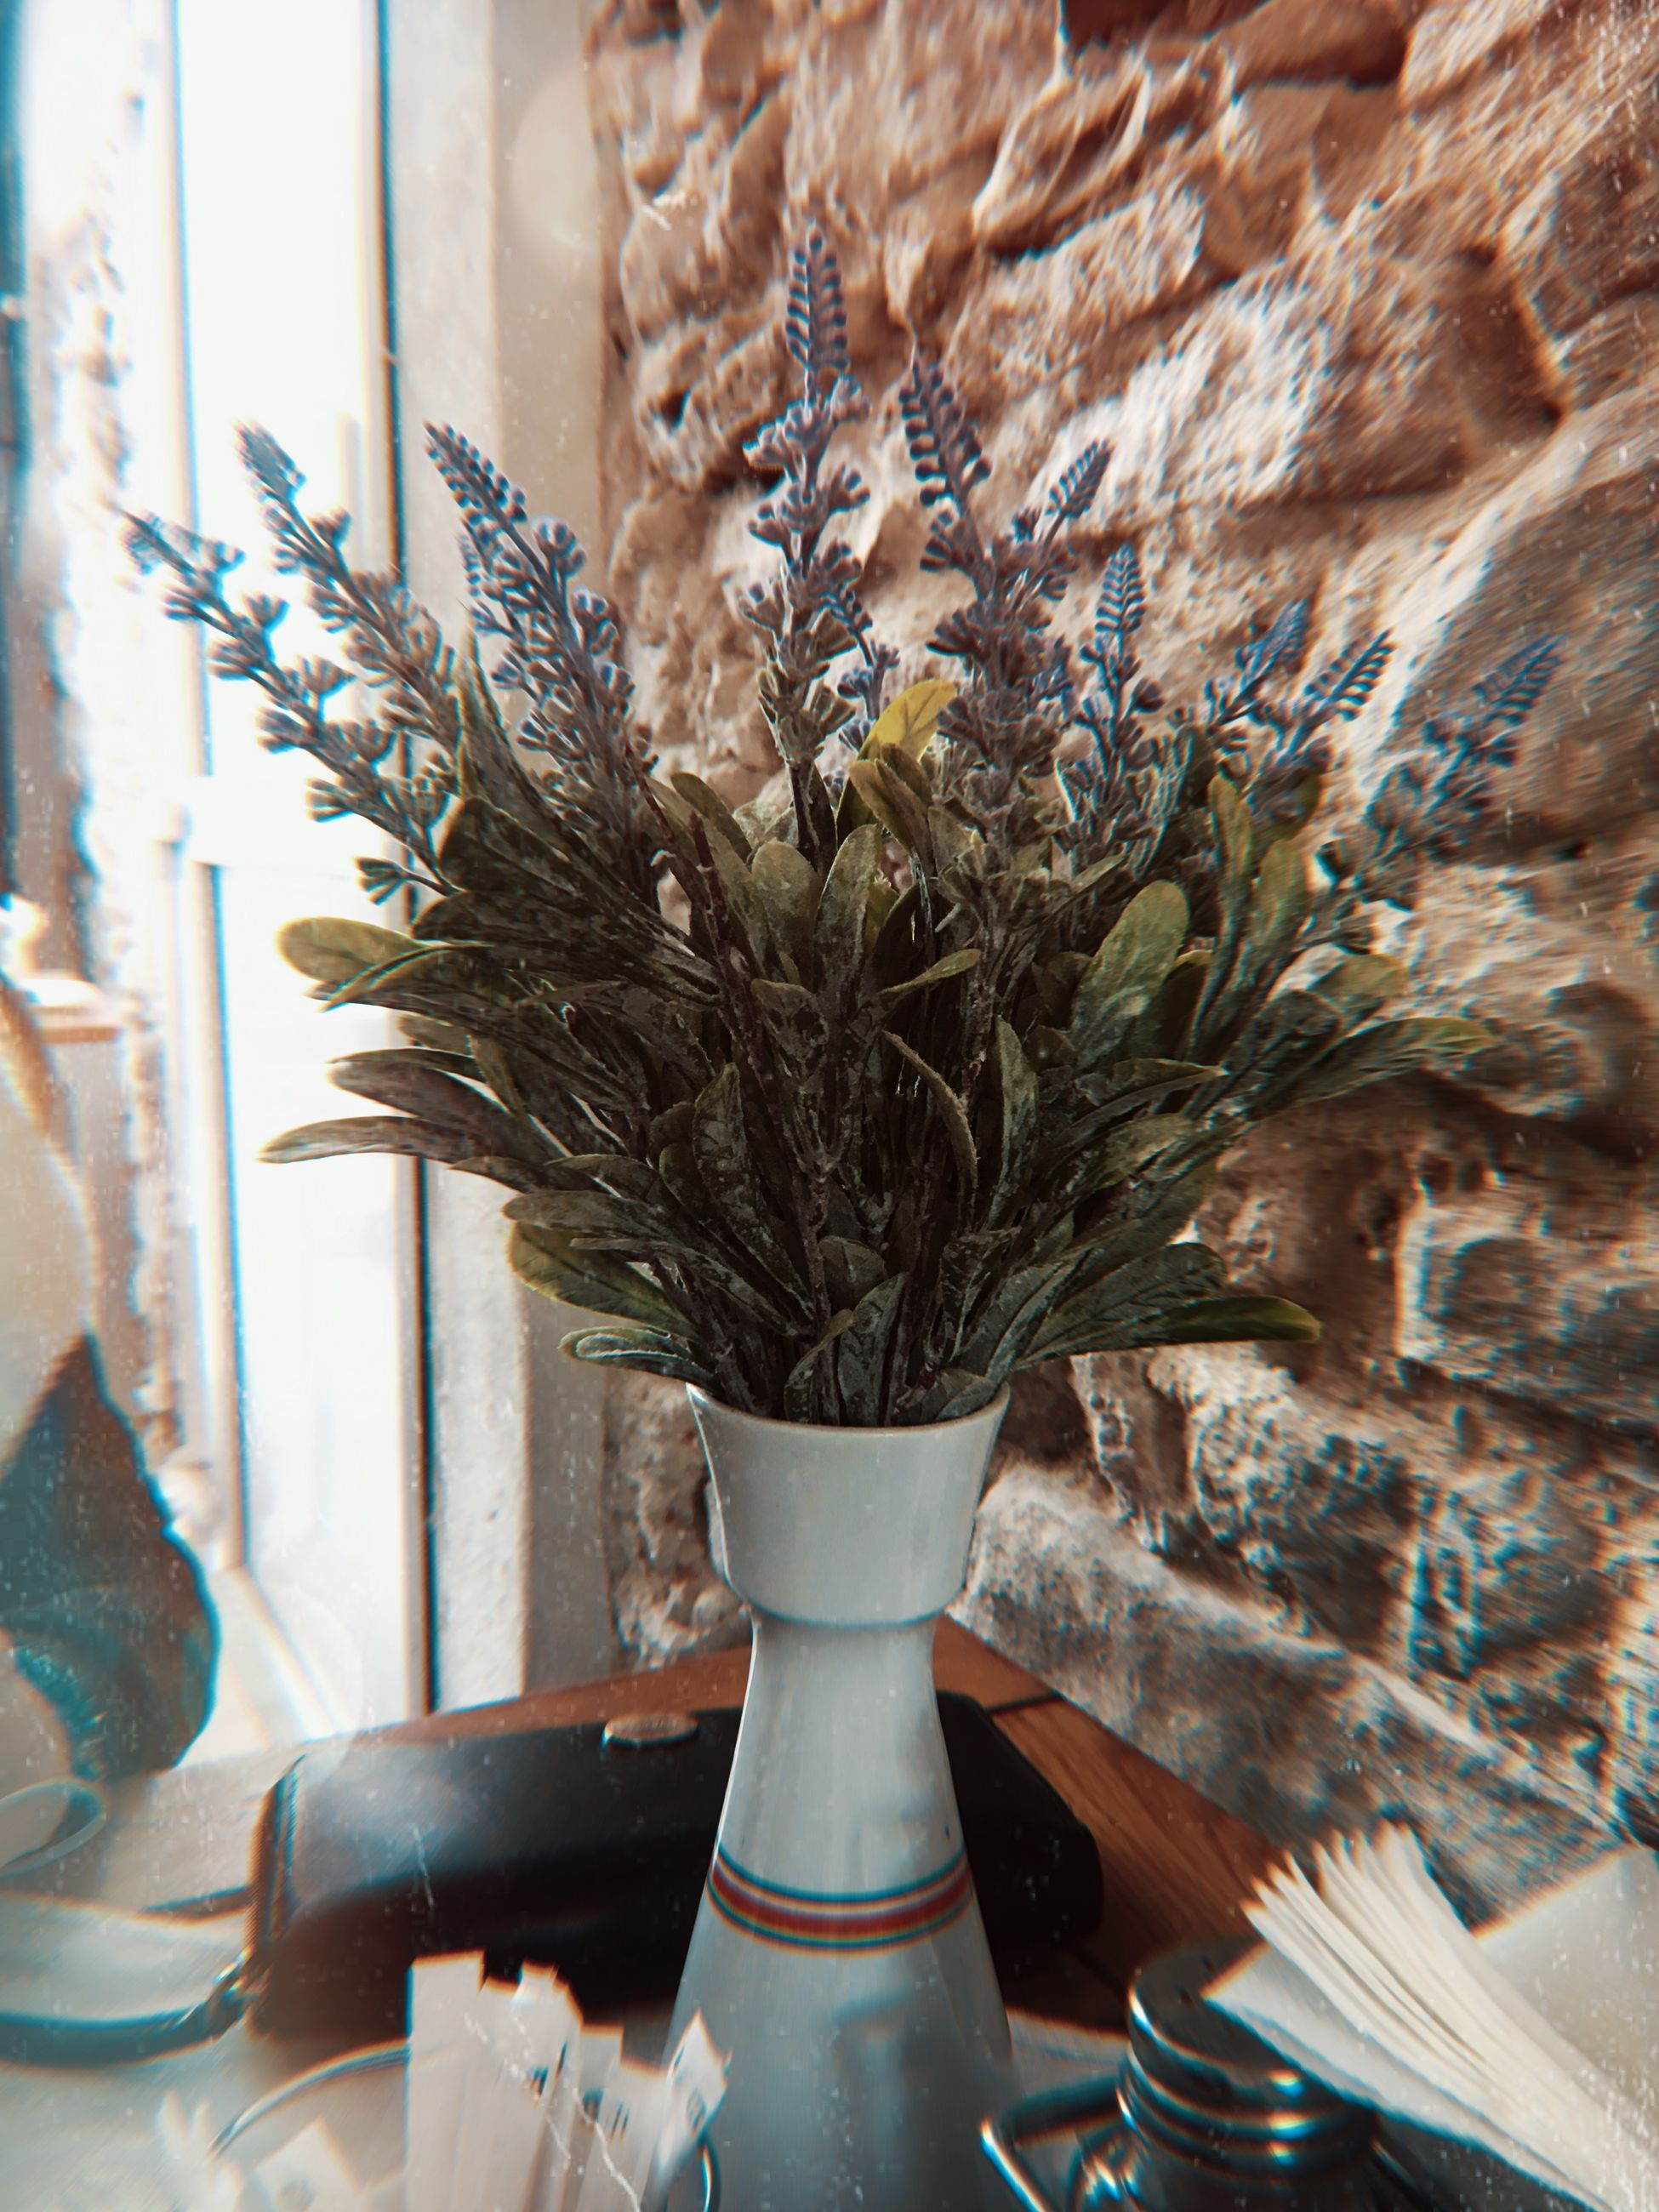 plant, no people, indoors, flowering plant, vase, flower, nature, close-up, day, growth, potted plant, window, beauty in nature, vulnerability, decoration, fragility, selective focus, flower arrangement, flower head, houseplant, bouquet